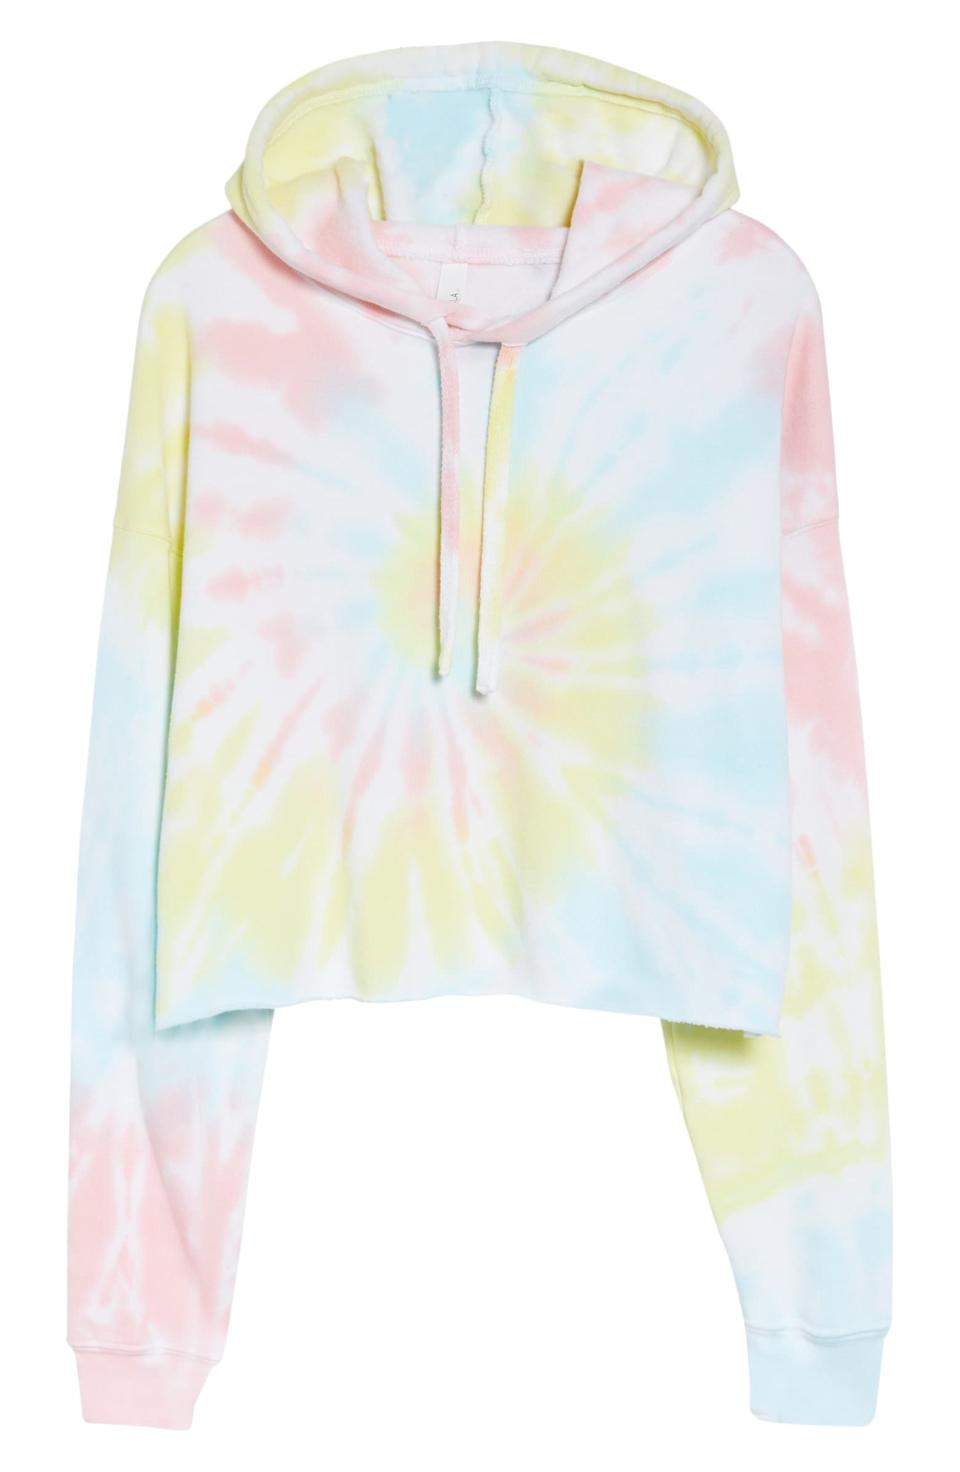 Bella + Canvas Crop Tie Dye Hoodie. Image via Nordstrom.